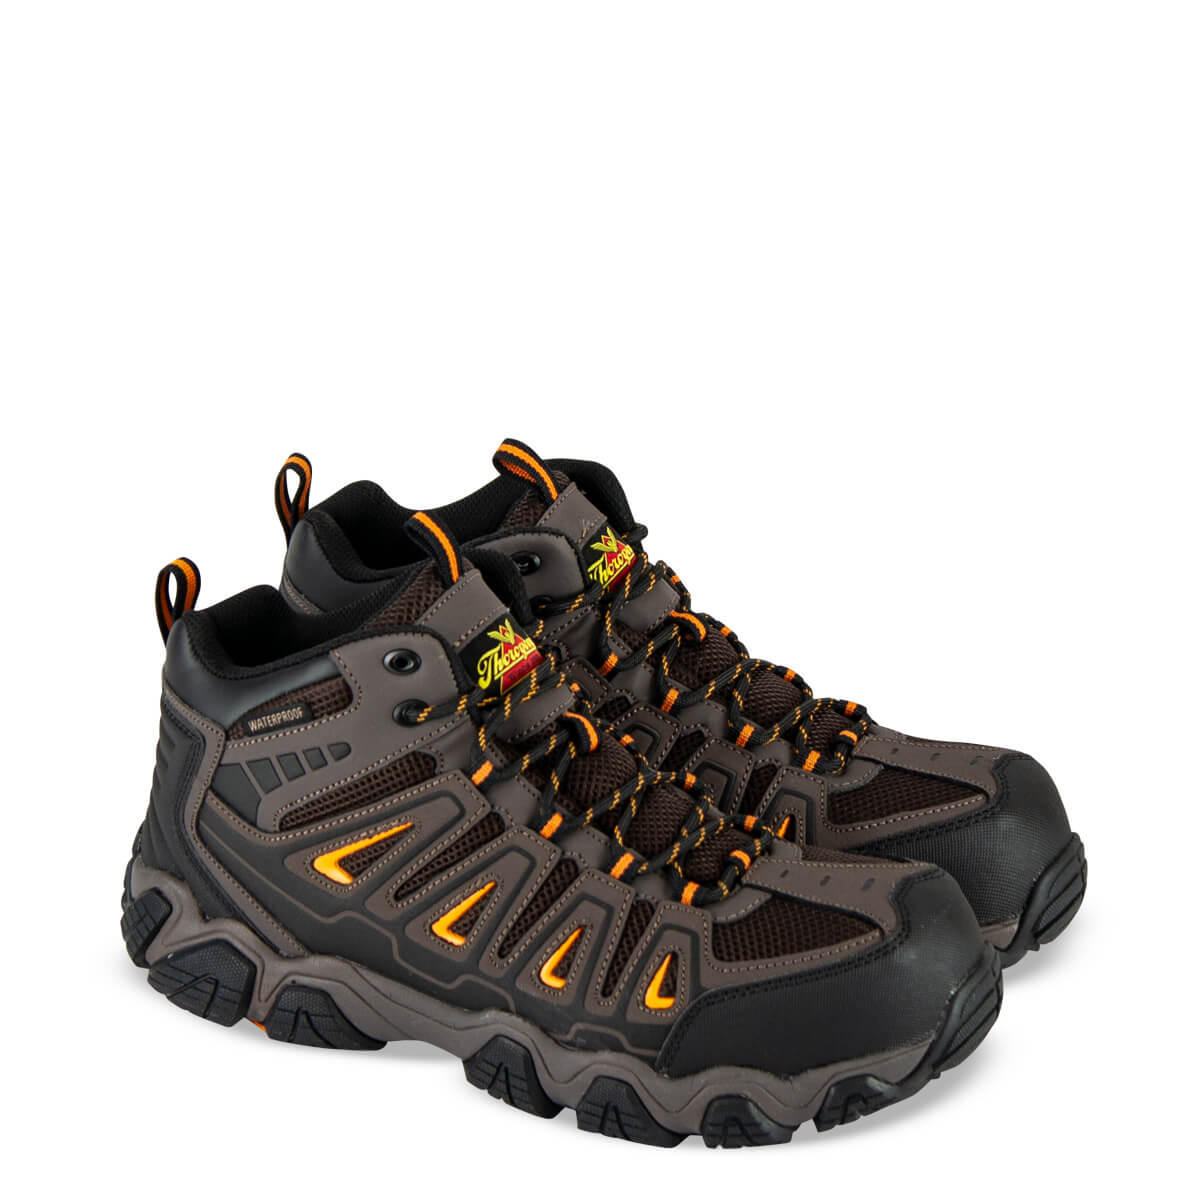 crosstrex-mid-waterproof-brown-oragne-safety-toe-804-4291_1